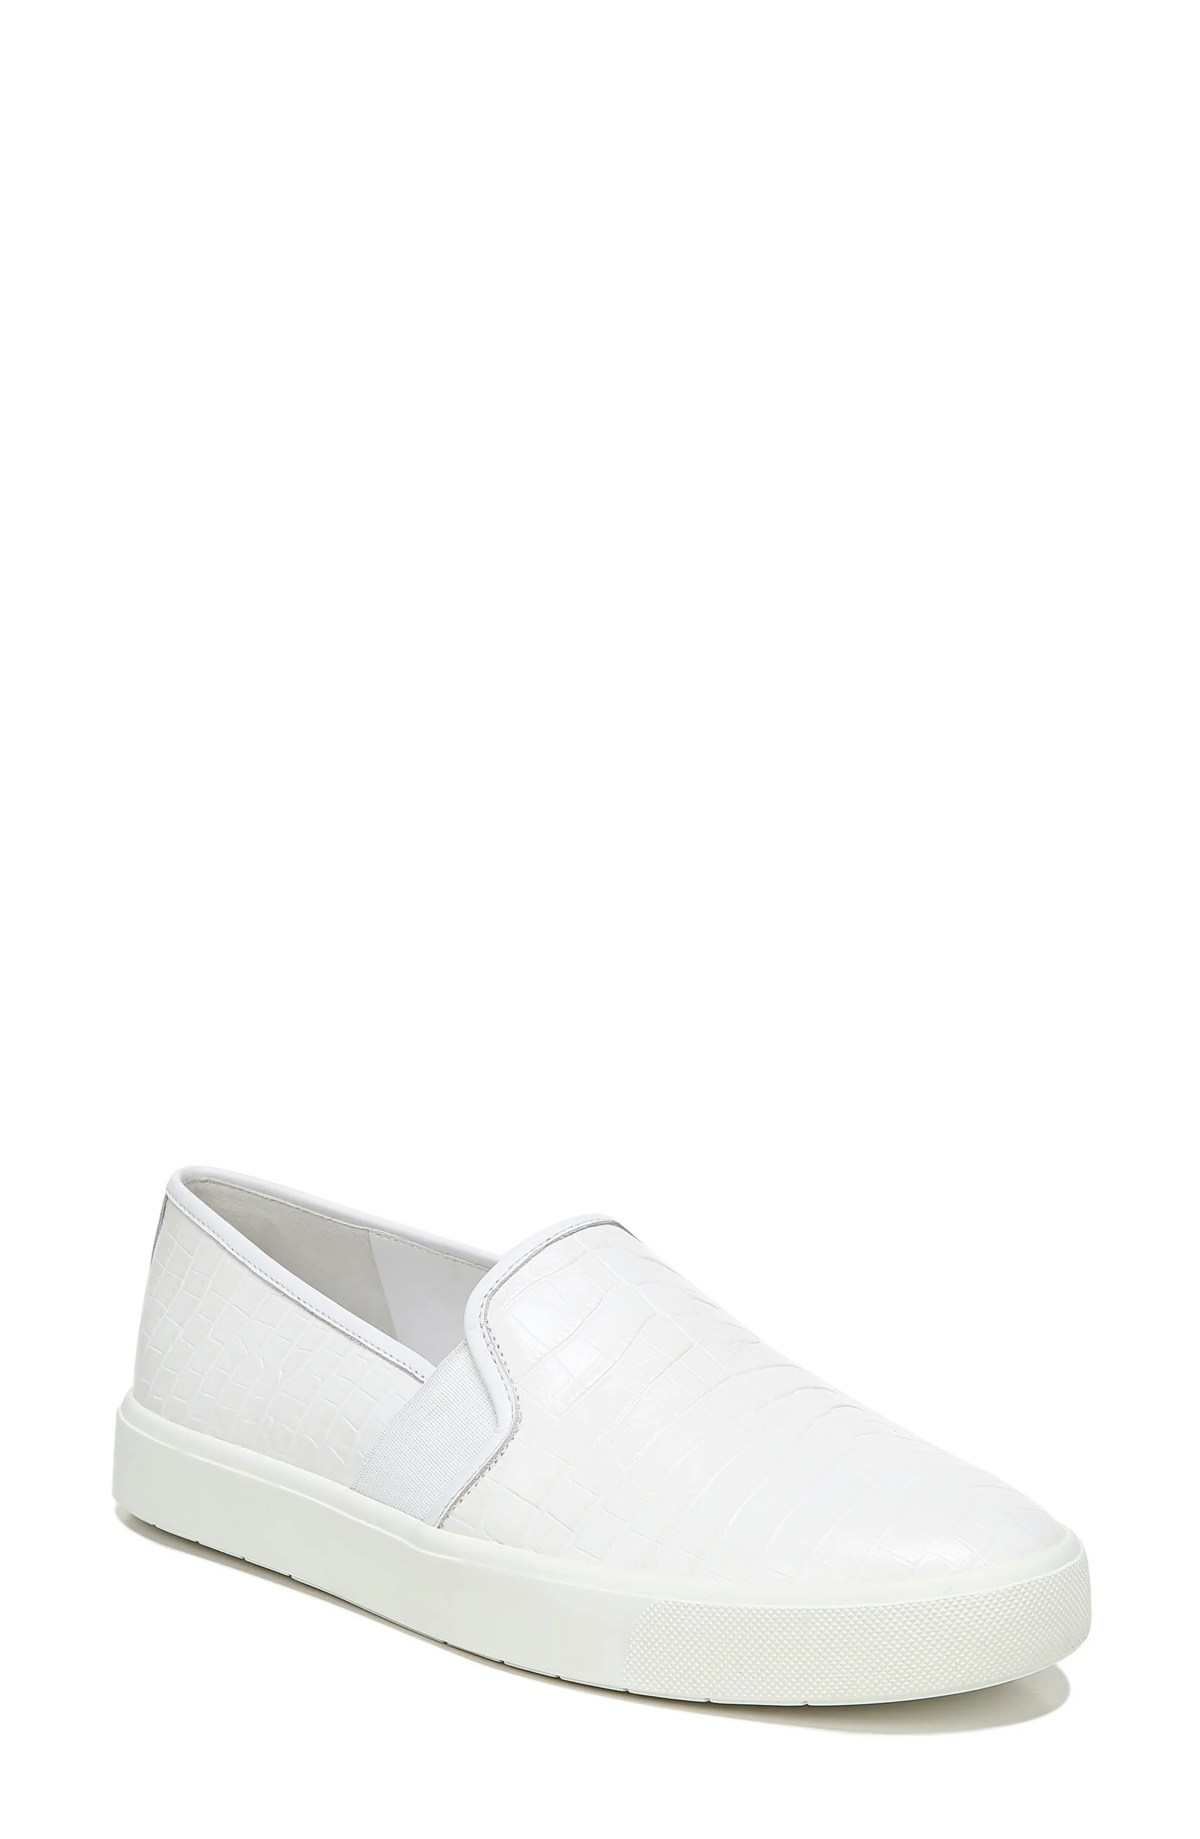 VINCE Blair 5 Slip-On Sneaker, Main, color, OPTIC WHITE